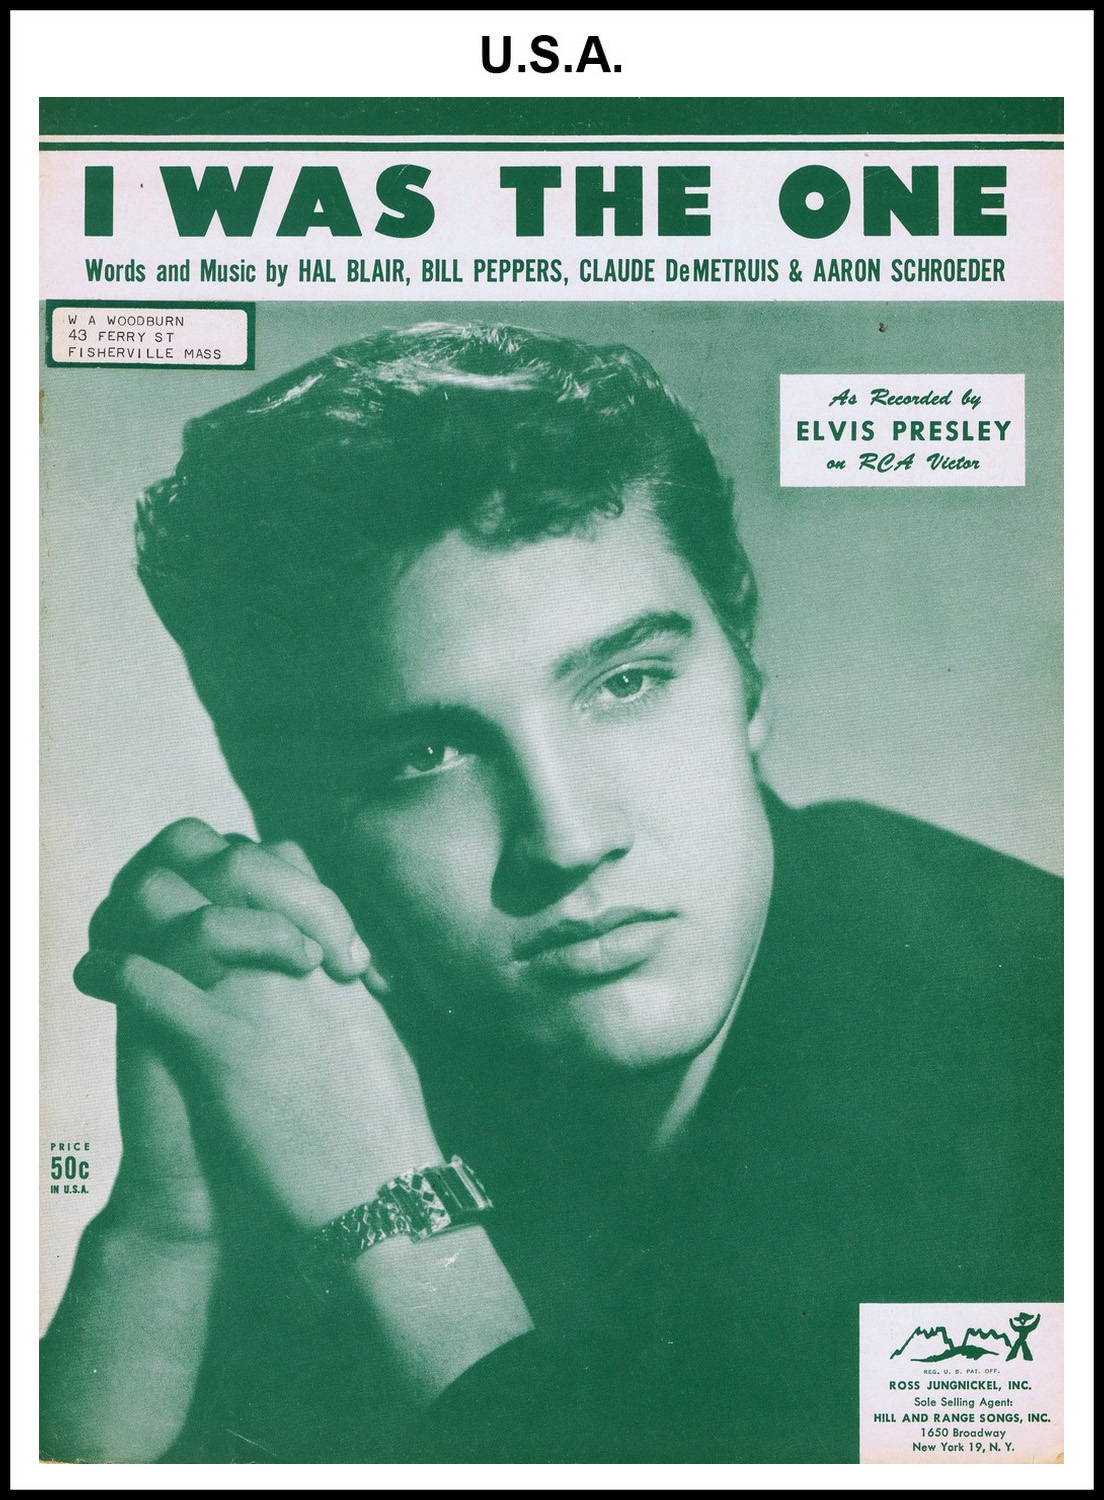 1956 - I Was The One (USA 50c) (CHRIS GILES COLLECTION)